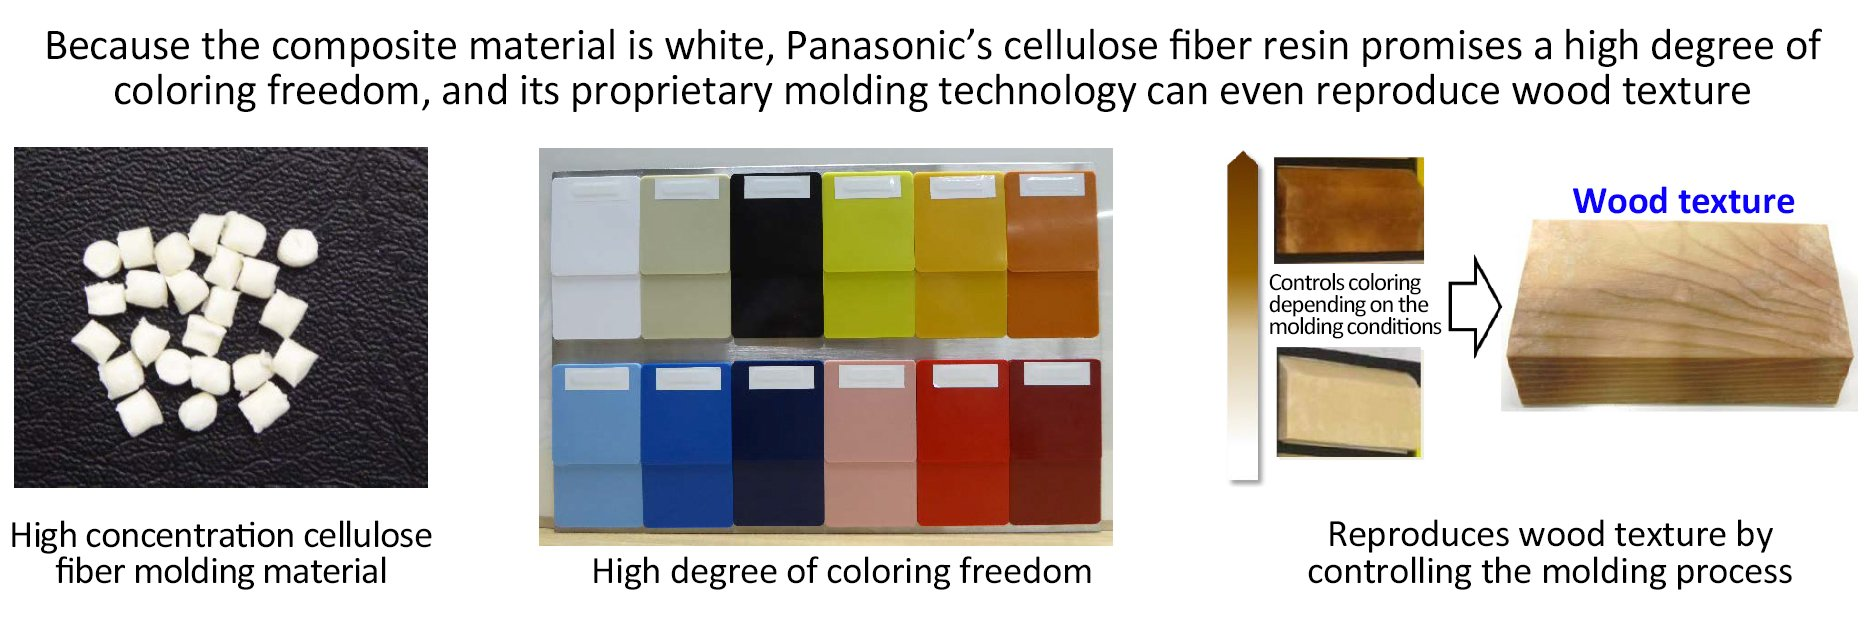 Illustration: Because the composite material is white, Panasonic's cellulose fiber resin promises a high degree of coloring freedom, and its proprietary molding technology can even reproduce wood texture.